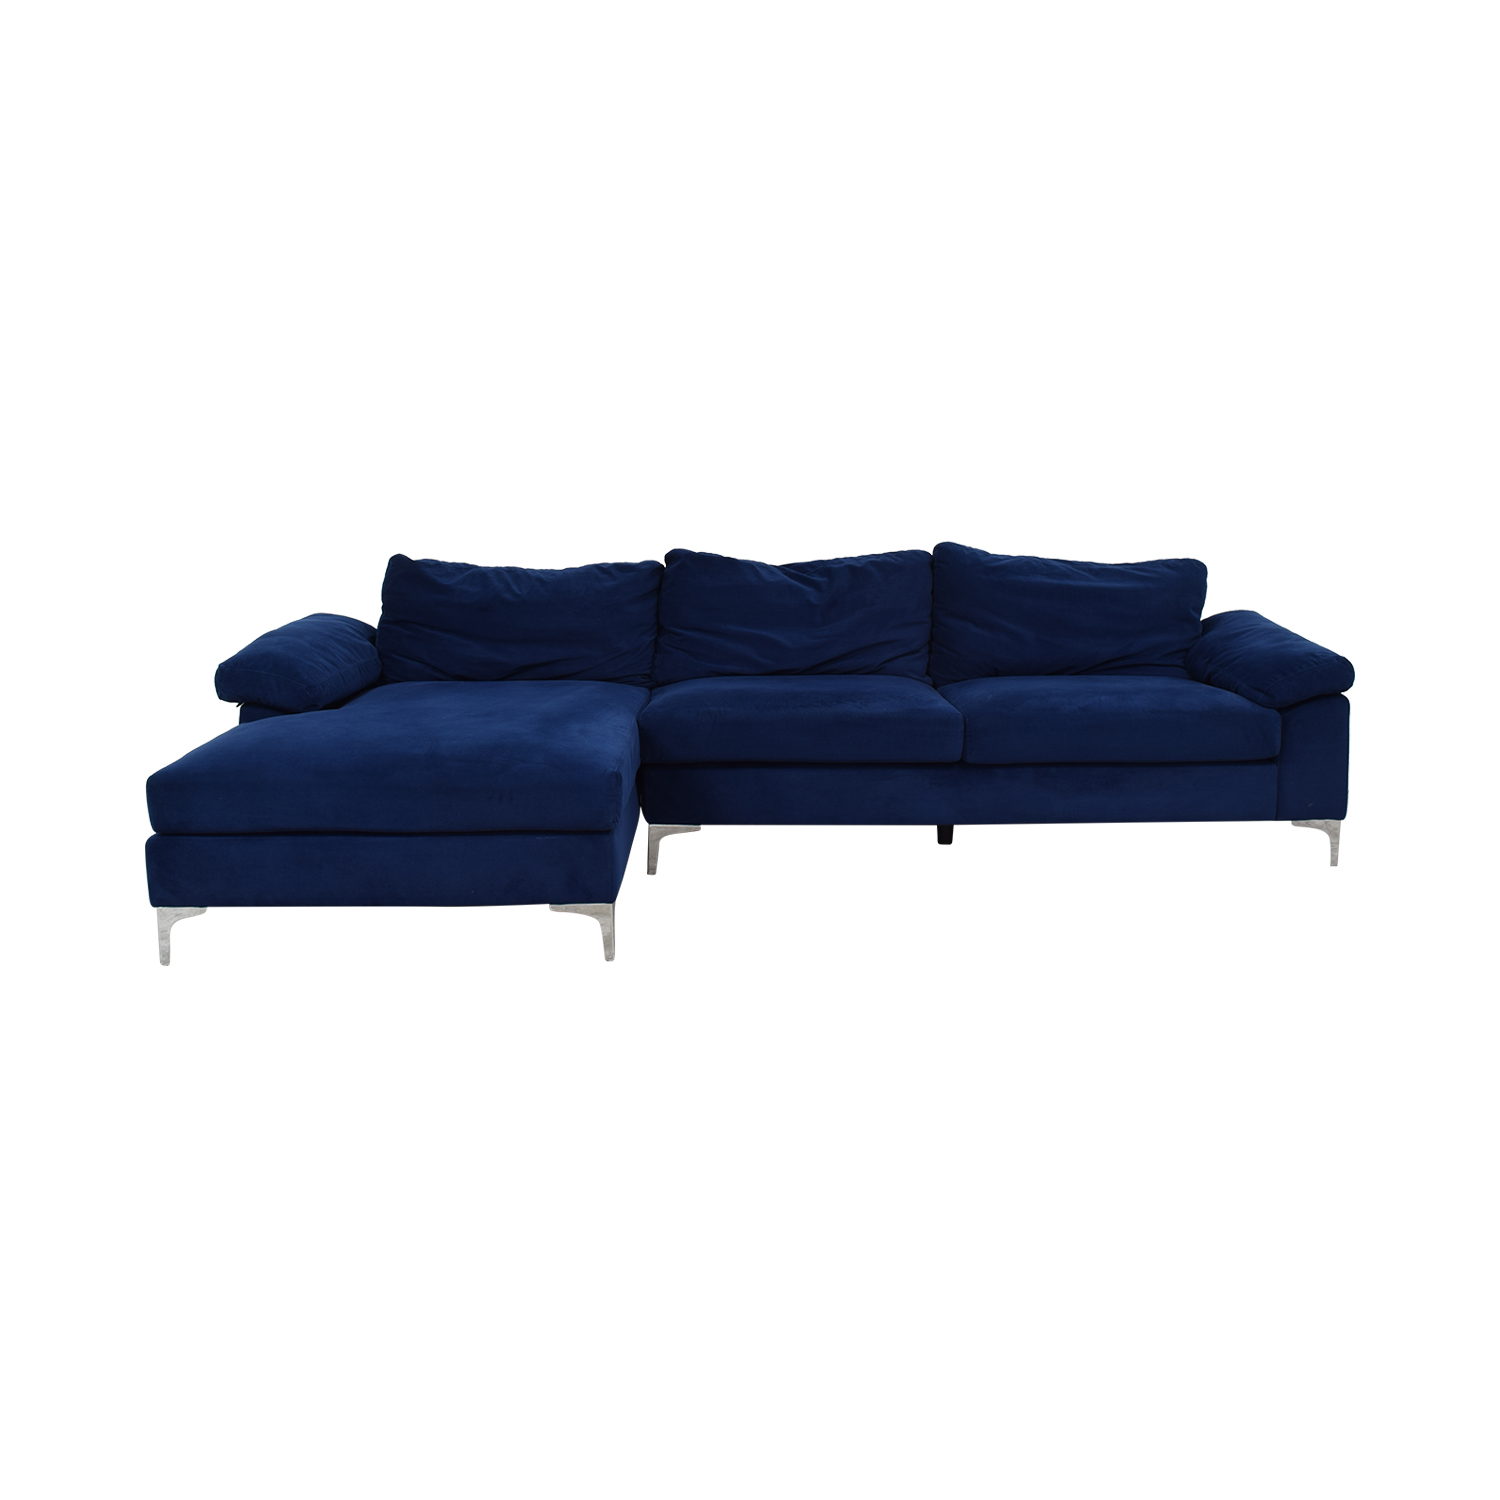 Blue Chaise Sectional with Chrome Legs on sale